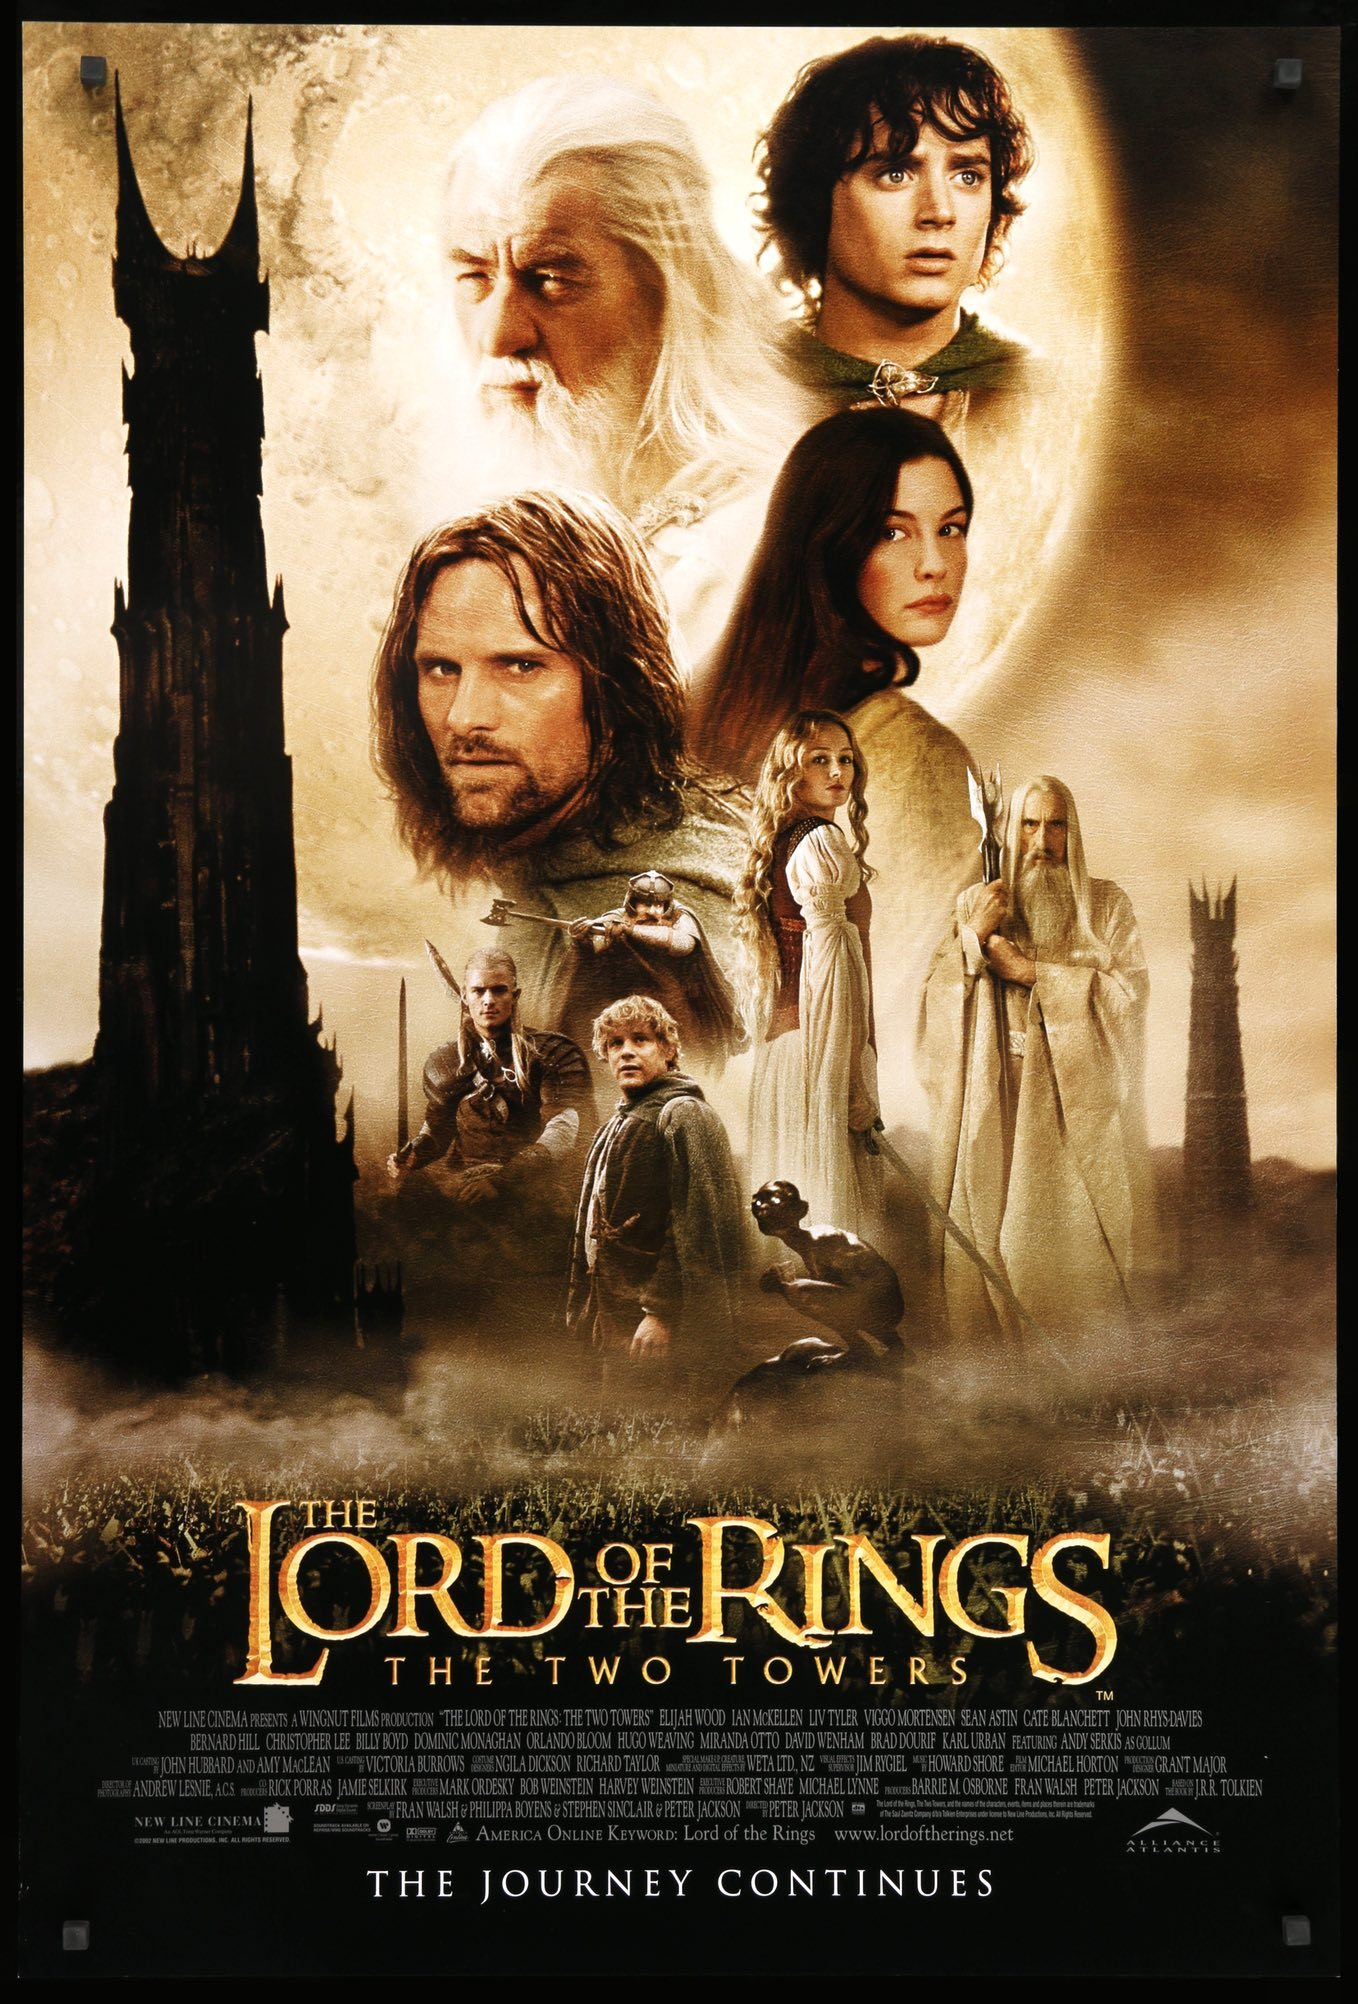 The Lord of the Rings: The Two Towers | Moviepedia | Fandom